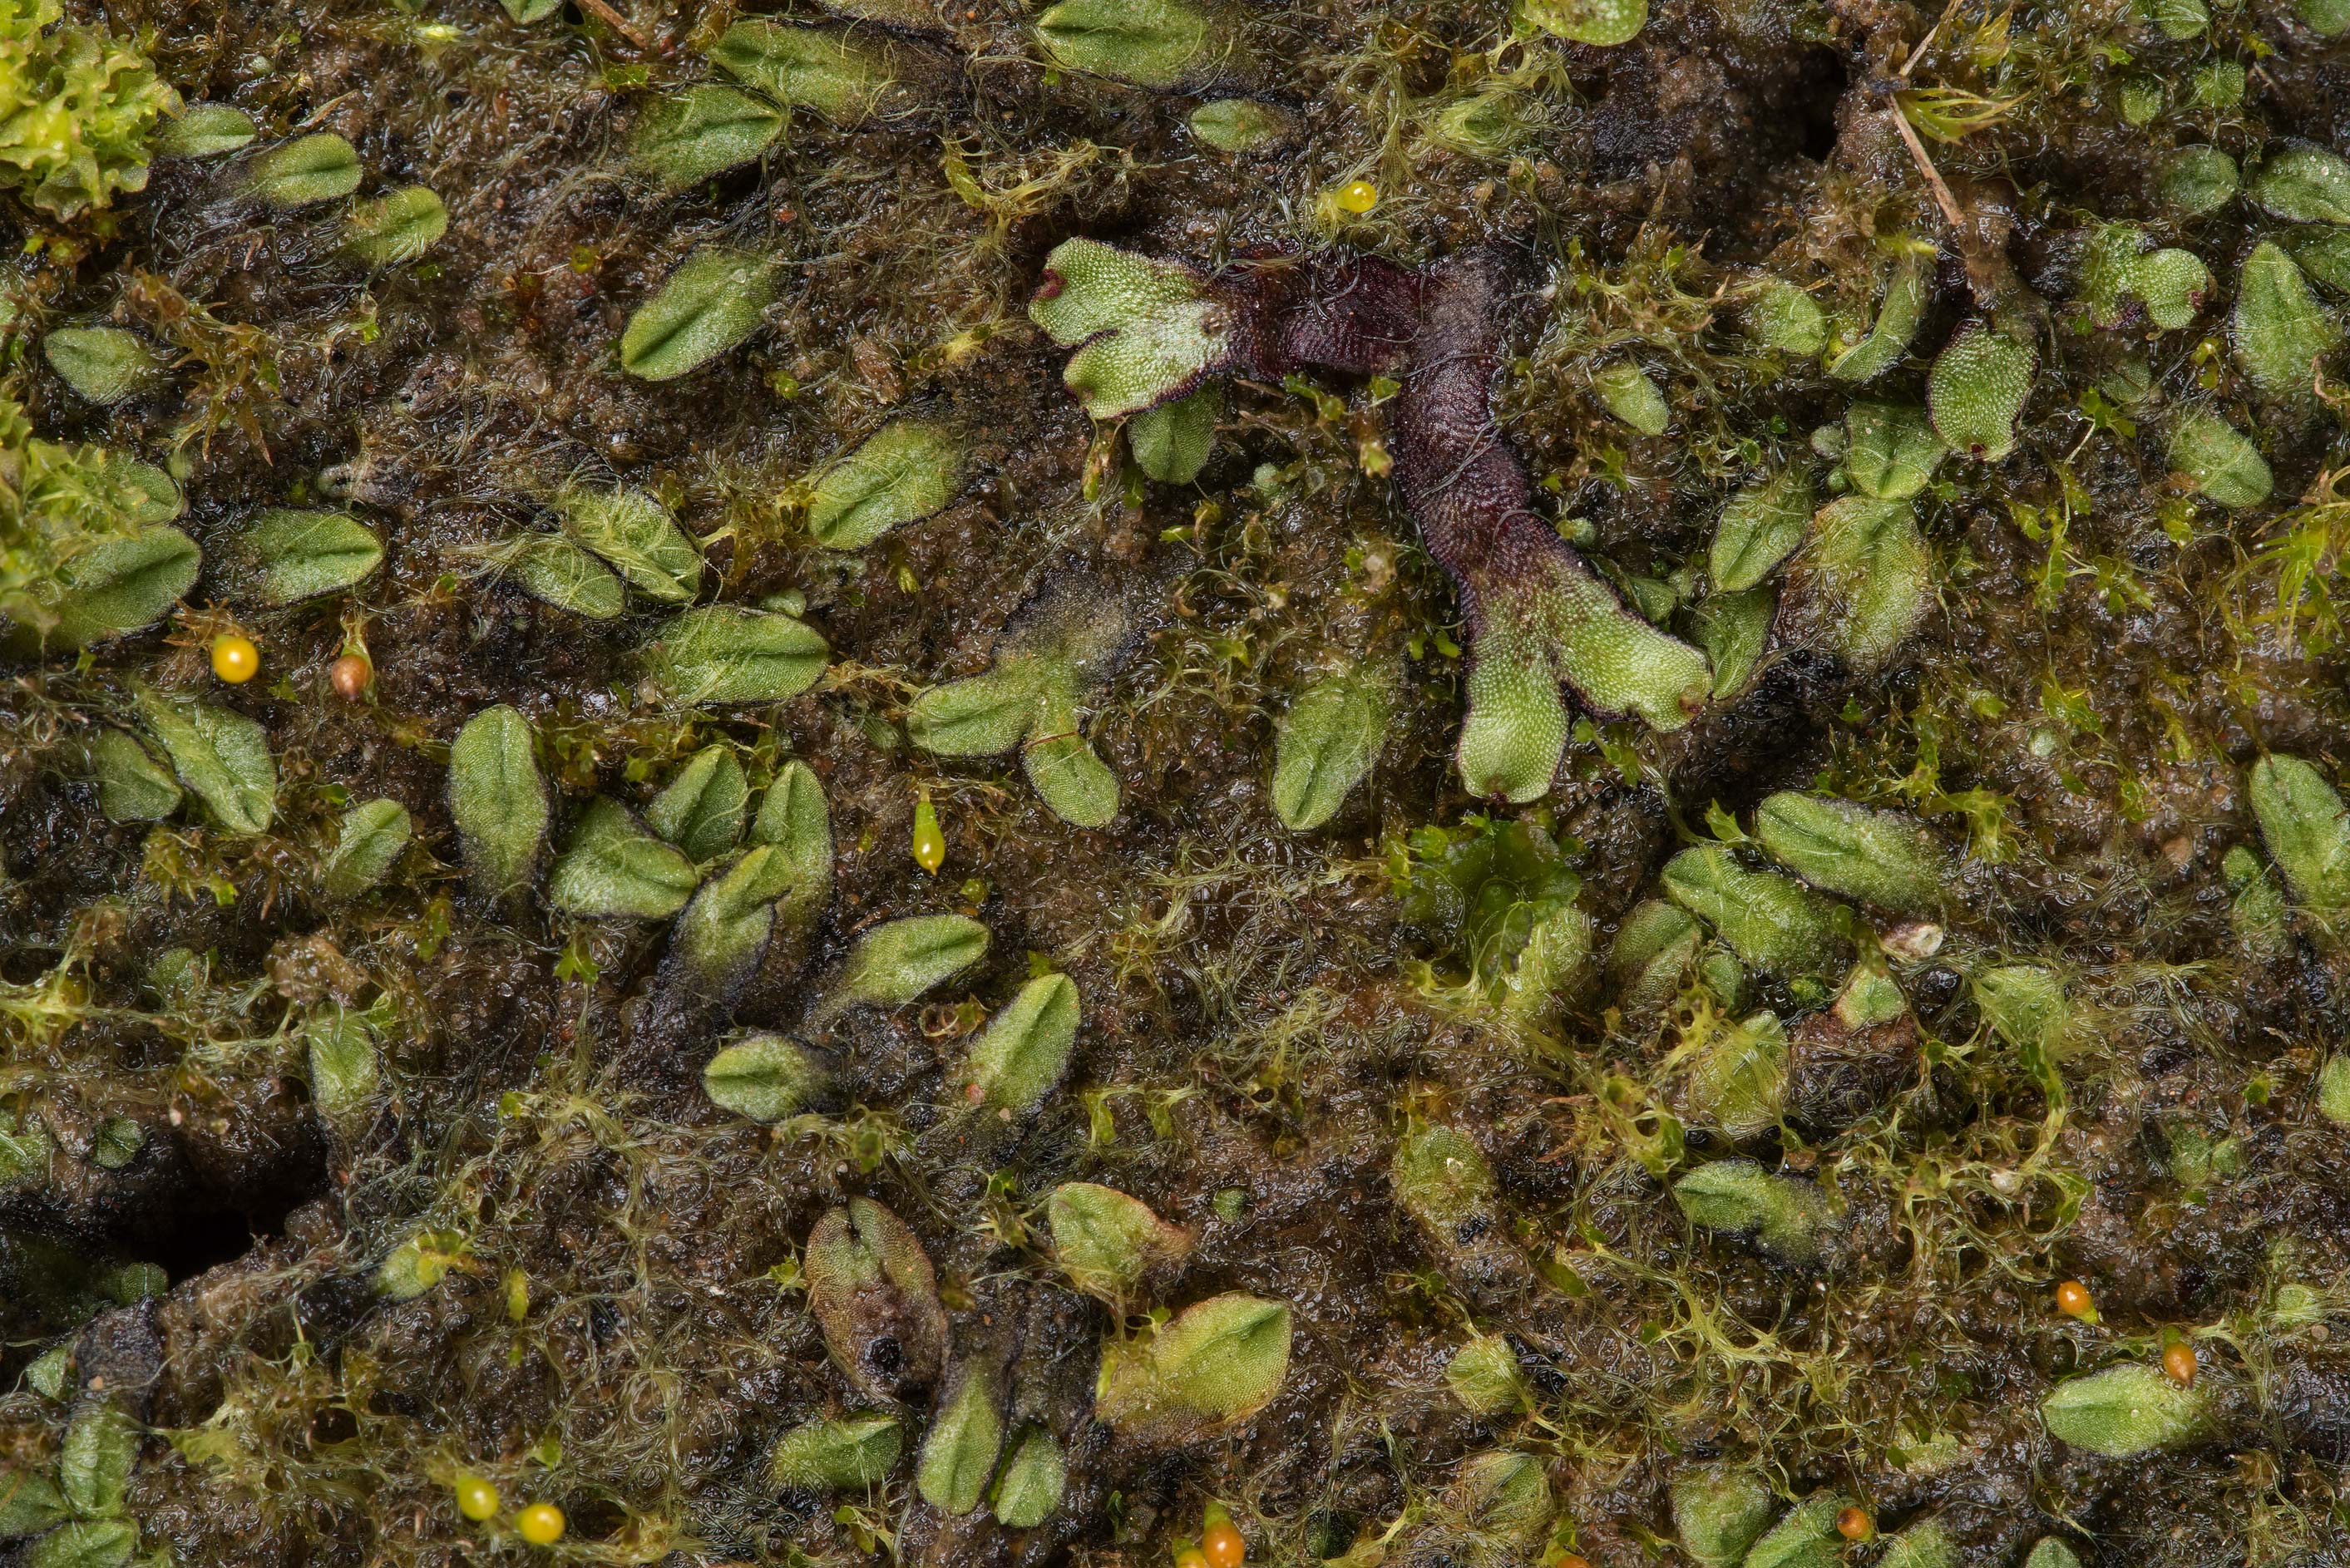 Hemispheric liverwort (Reboulia hemisphaerica) on...Creek Park. College Station, Texas